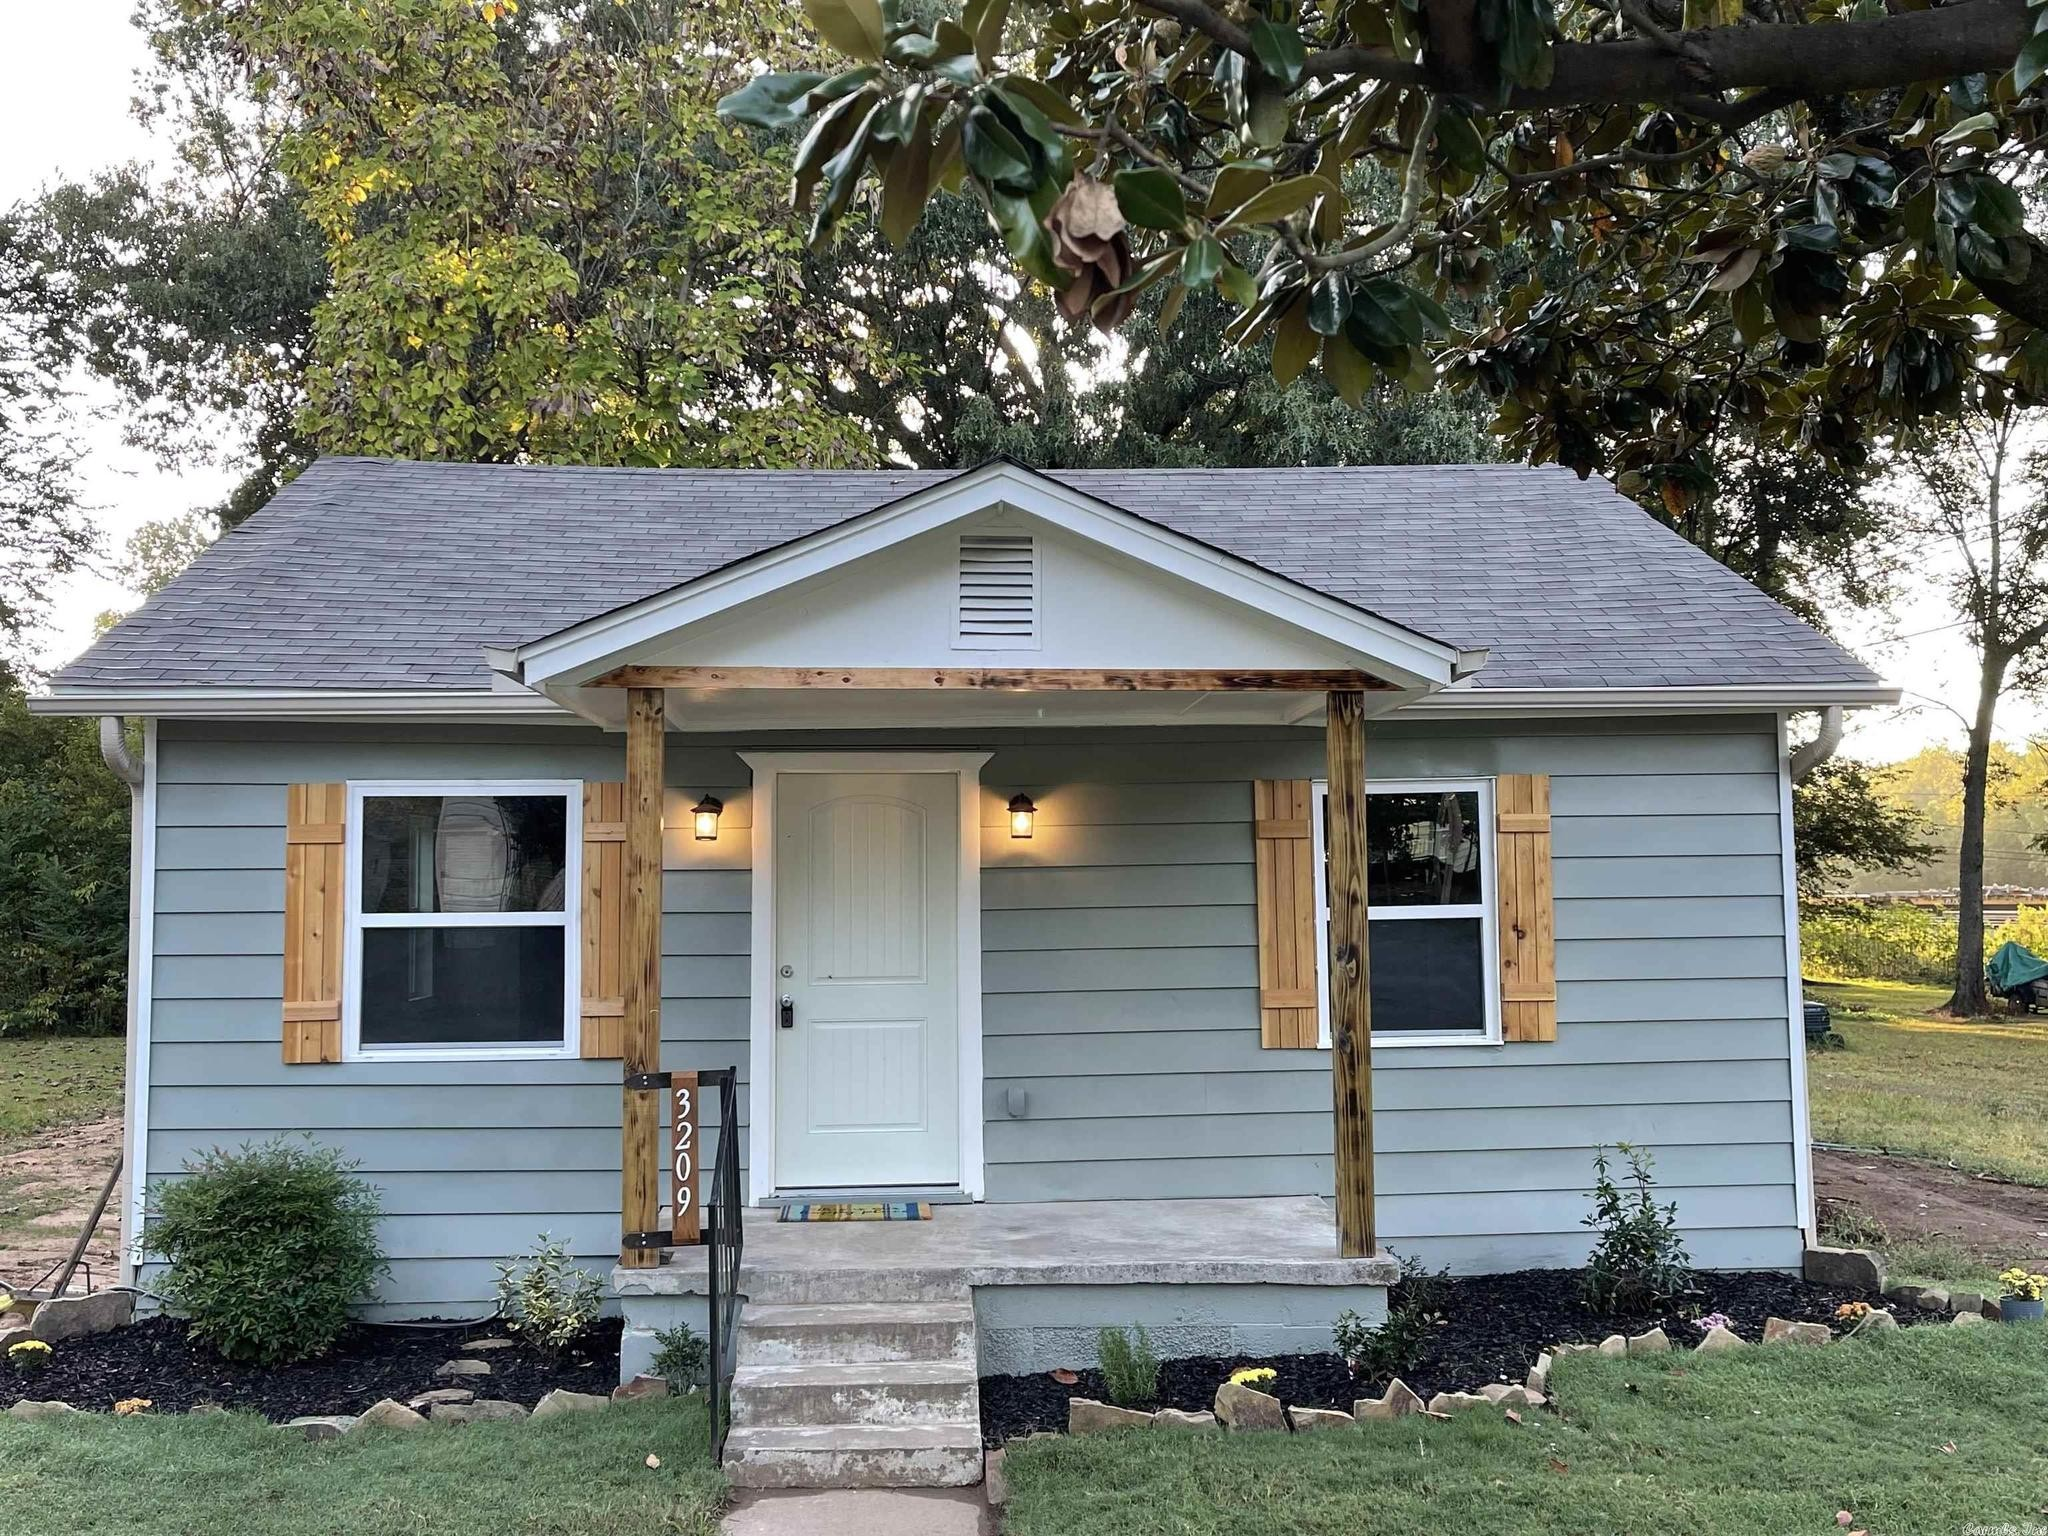 Refinished 2-Bedroom House In Meadowbrook